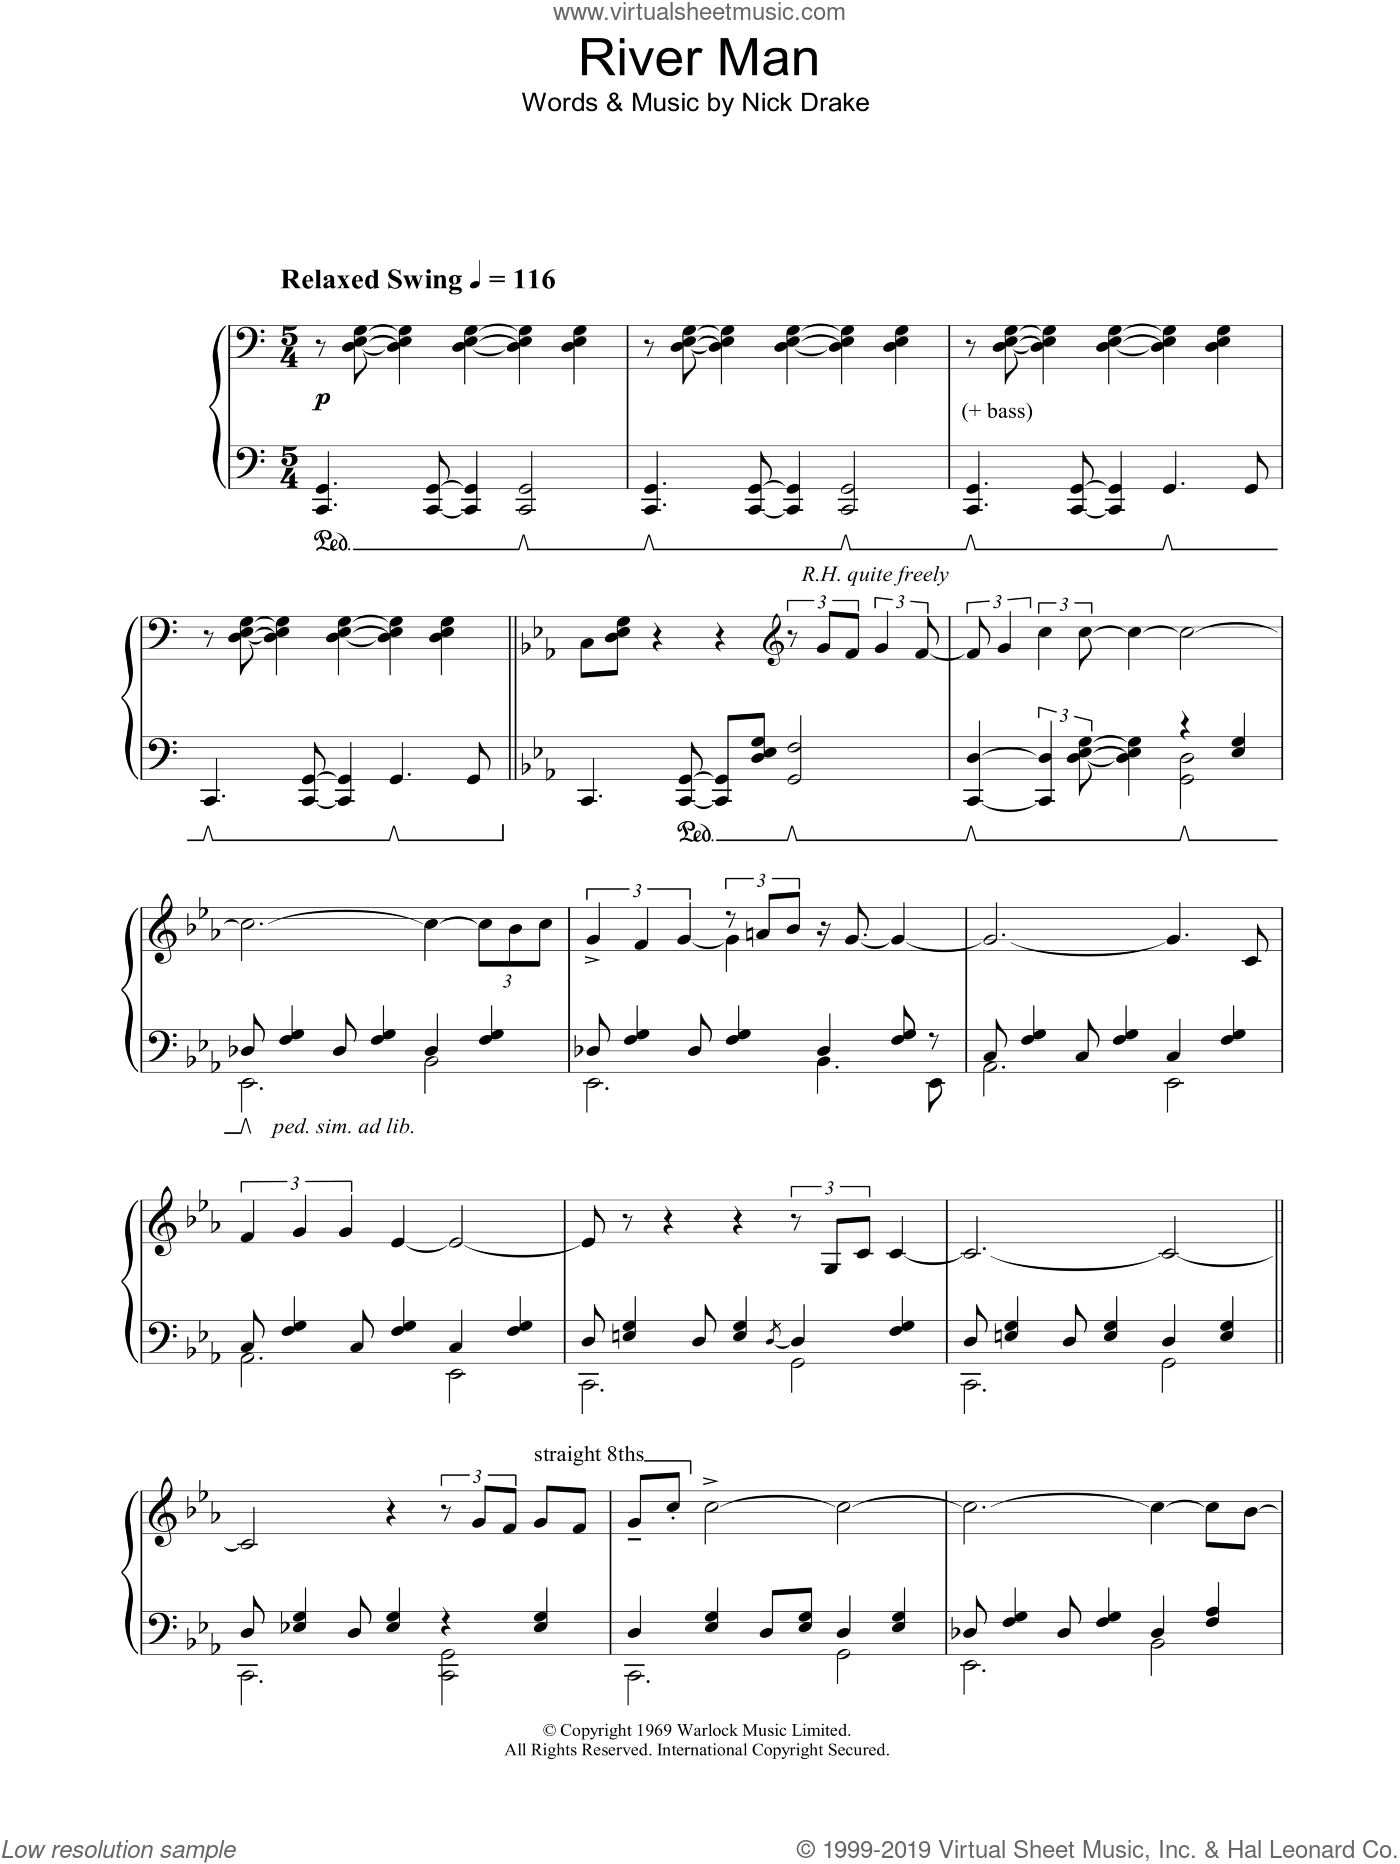 River Man sheet music for piano solo by Nick Drake, intermediate skill level